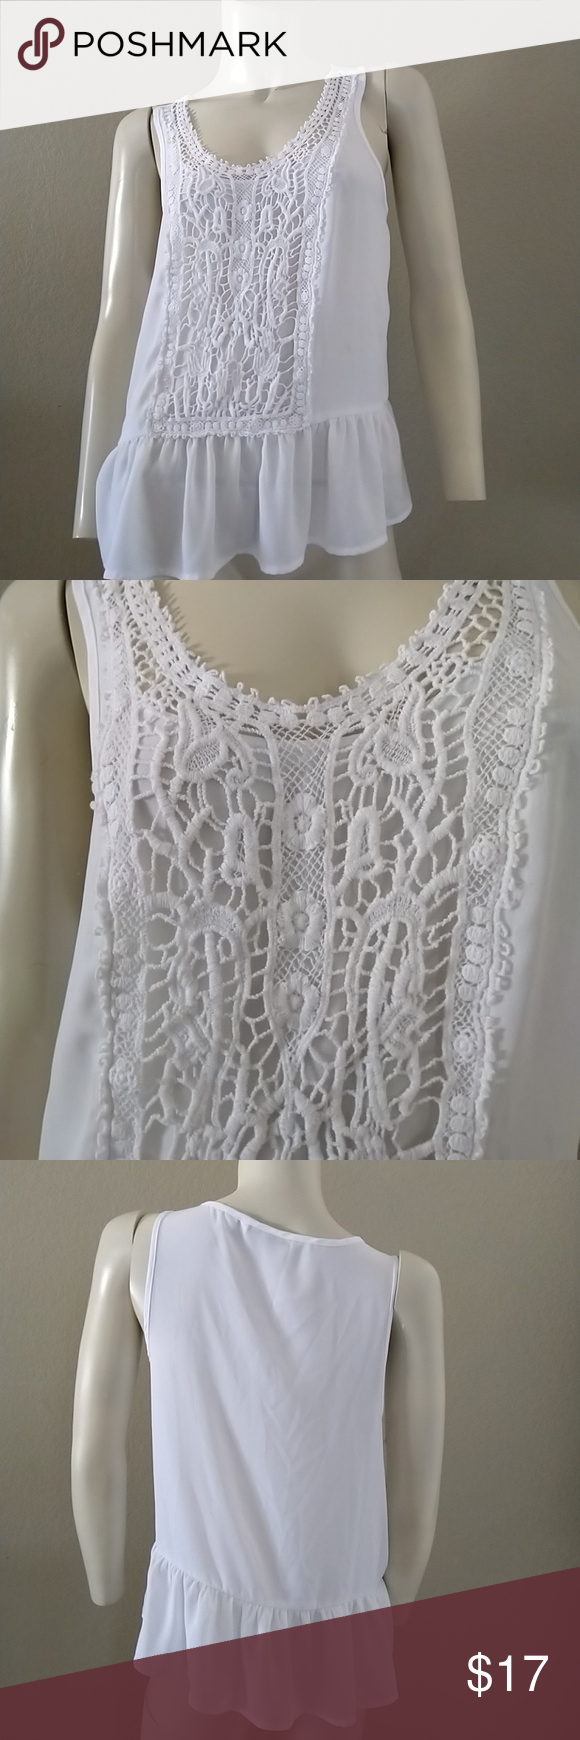 6e100c59b1 Lauren Conrad Sleeveless Blouse